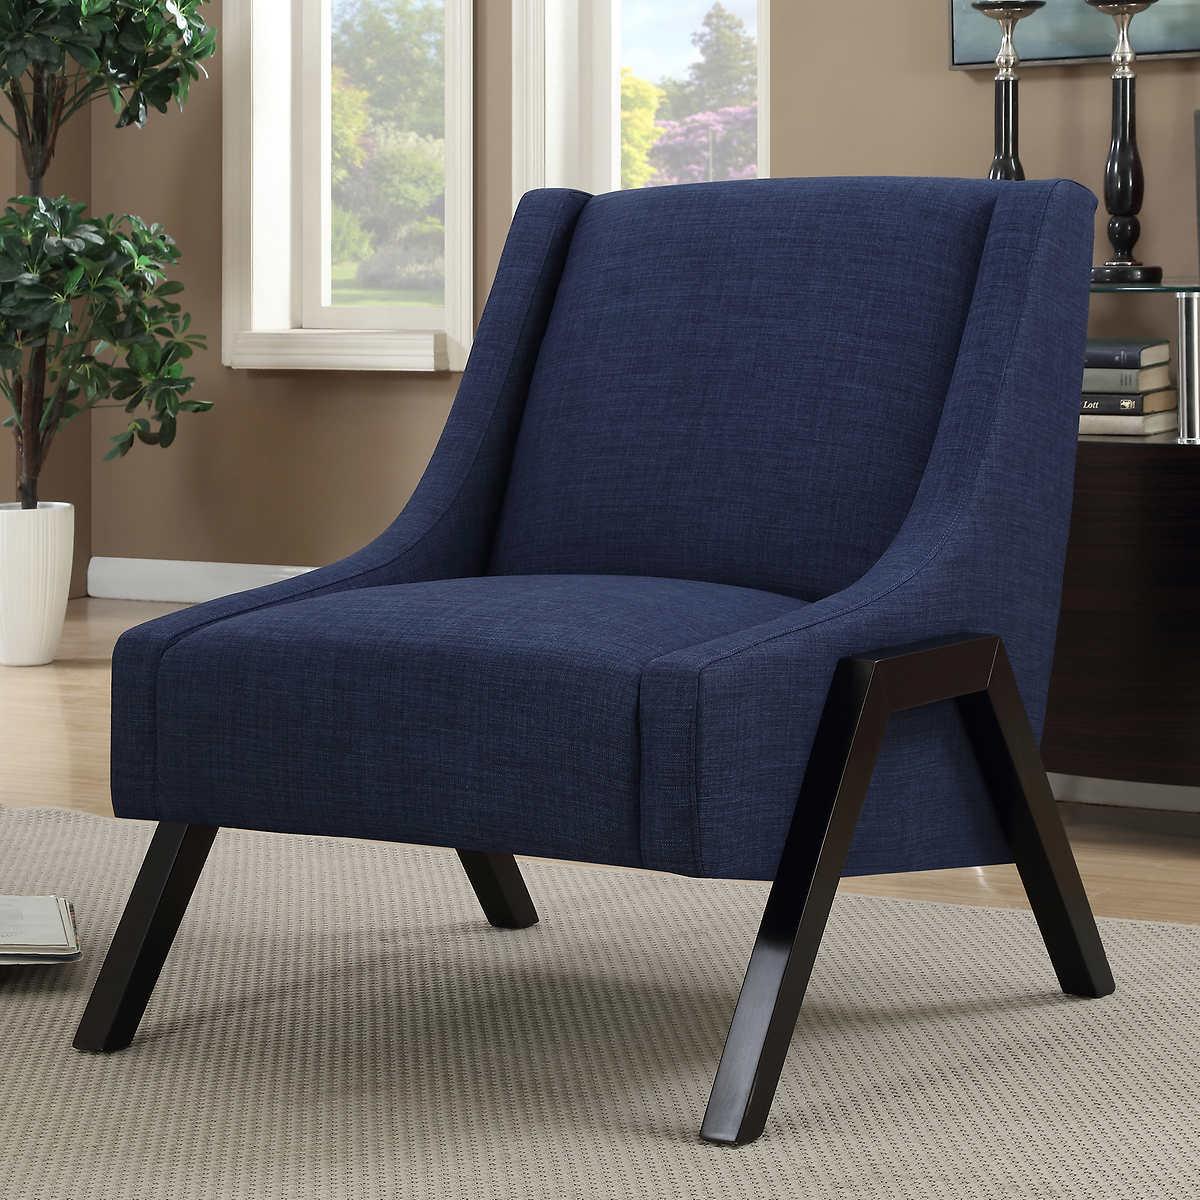 Lane Navy Blue Accent Chair. Item #1090445. Click to Zoom